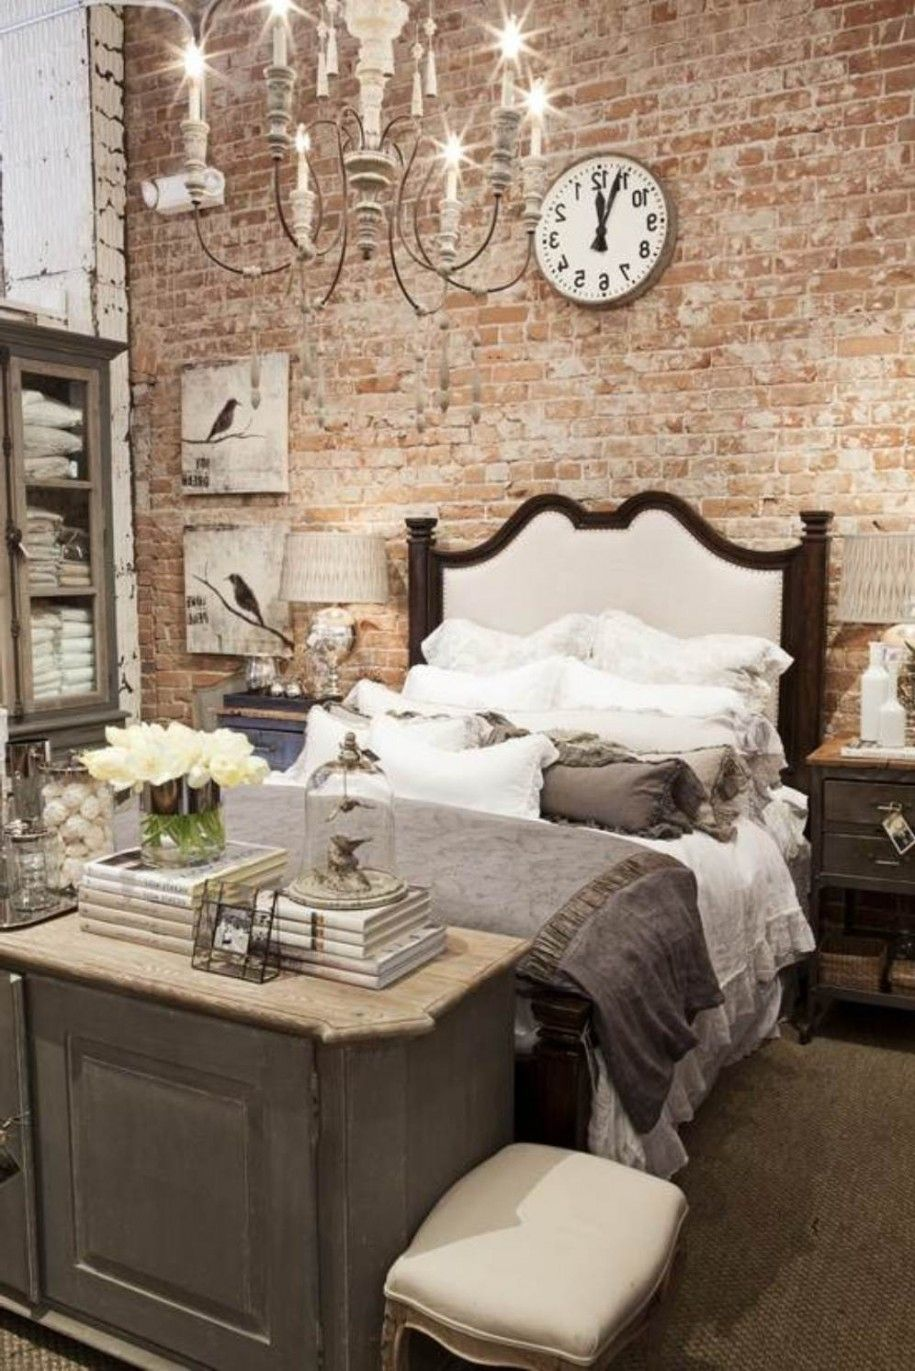 Romantic bedroom decor - Romantic Bedroom Decorating Ideas Bedroom Rustic Design Romantic Bedroom Ideas Exposed Brick Wall